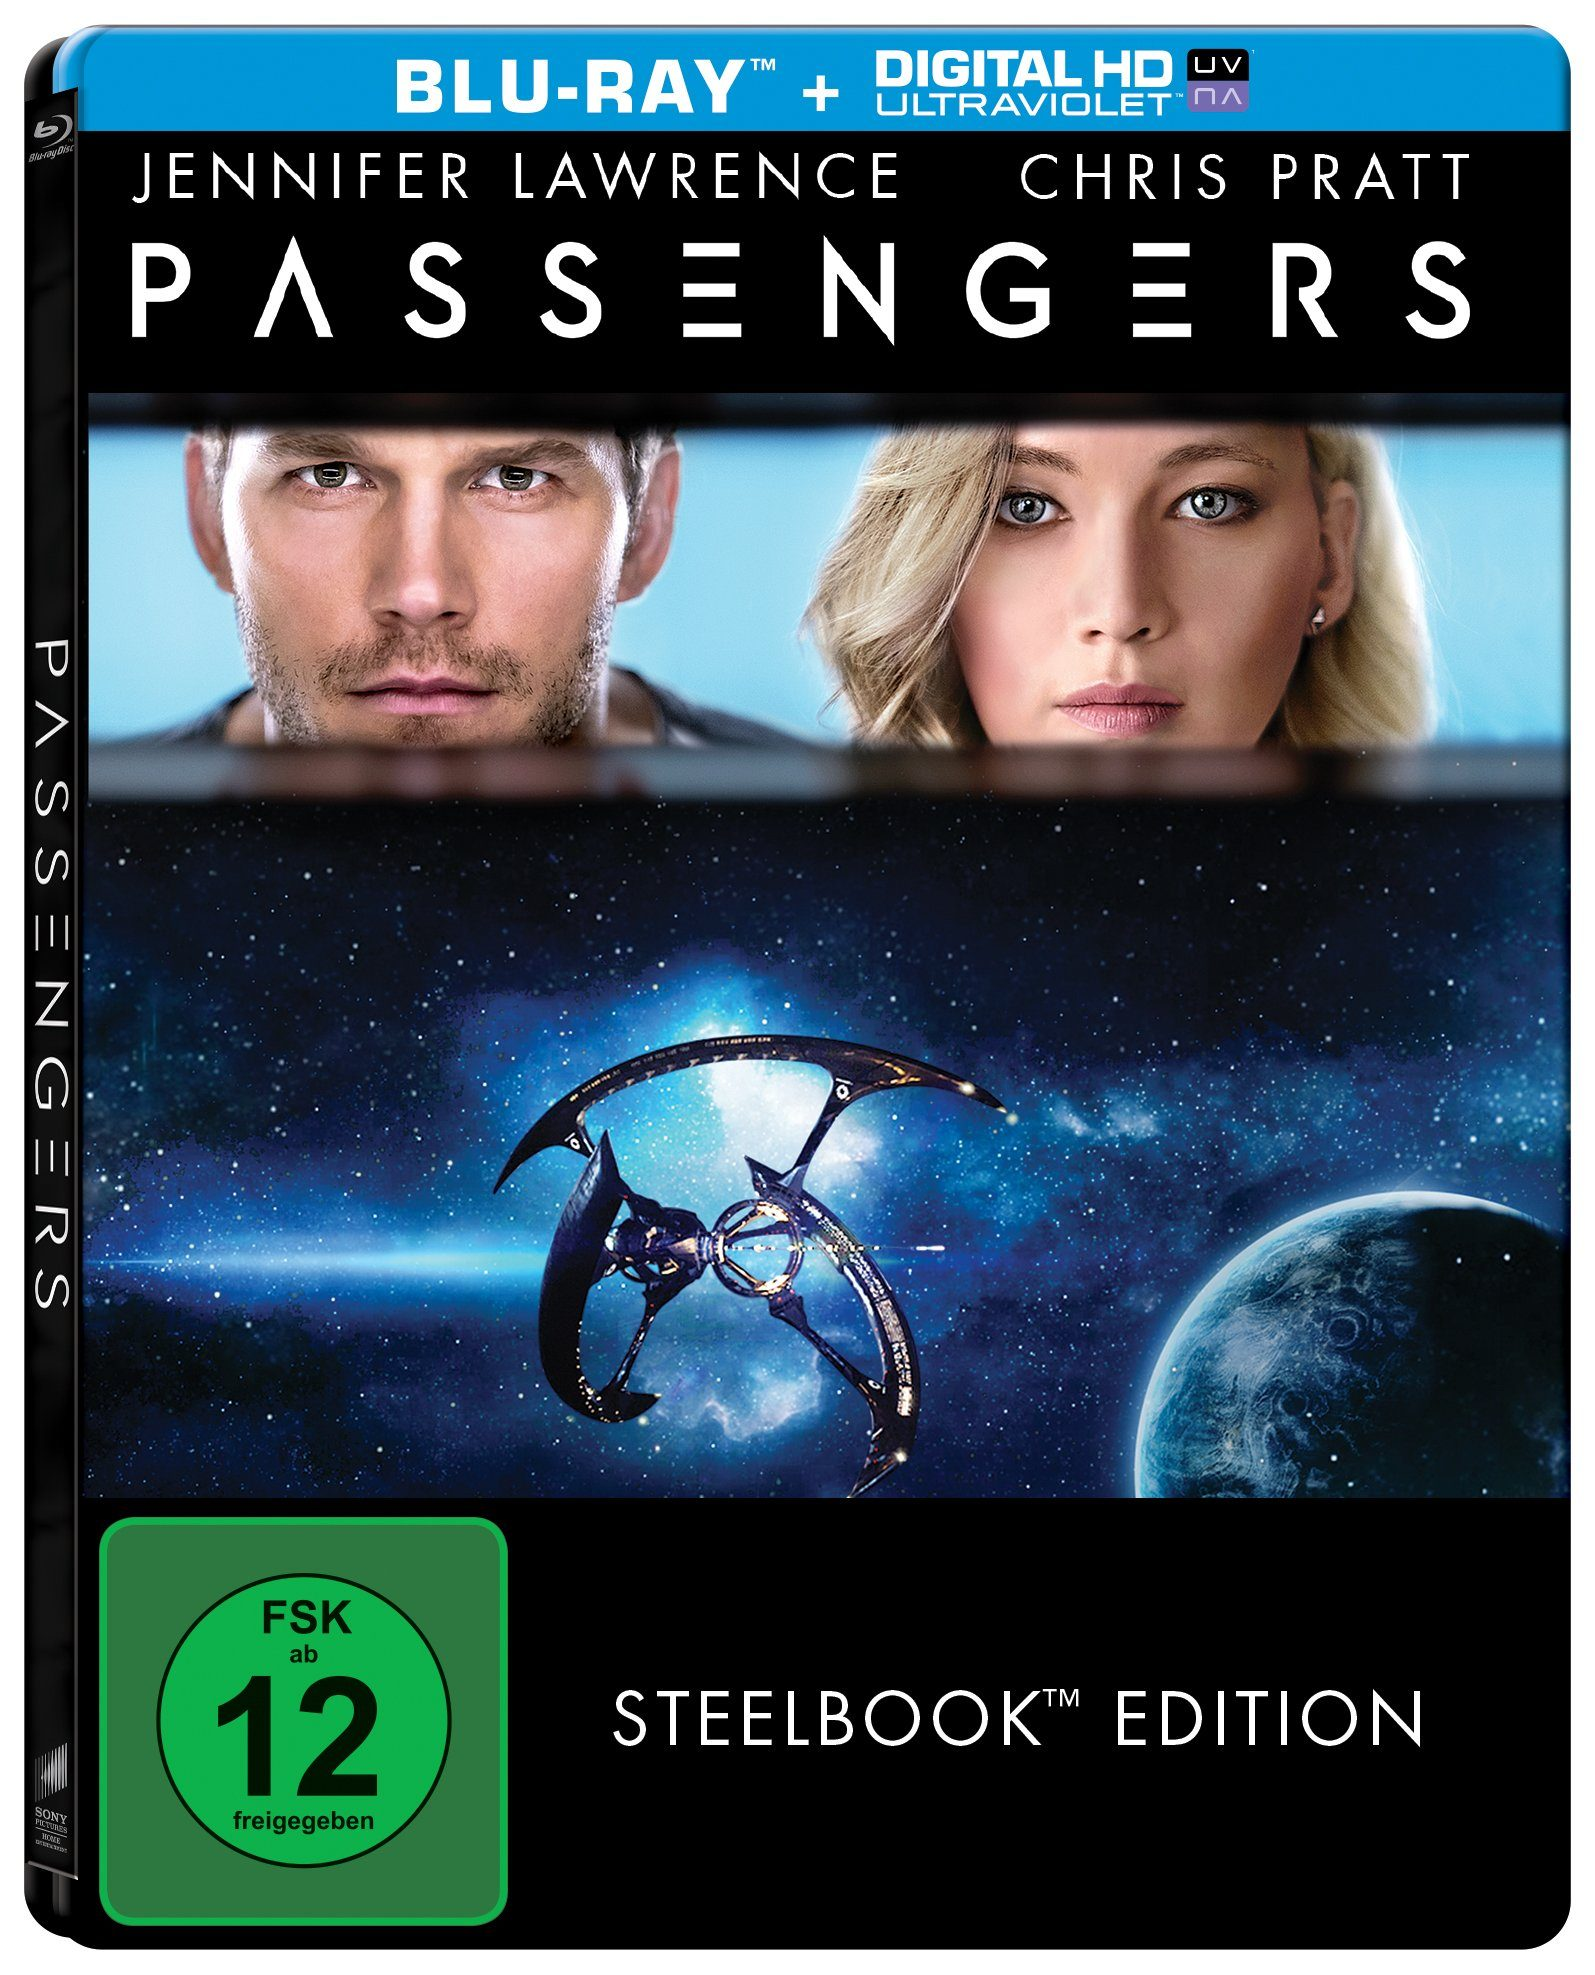 Sony Pictures Blu-ray »Passengers - Steelbook Edition«